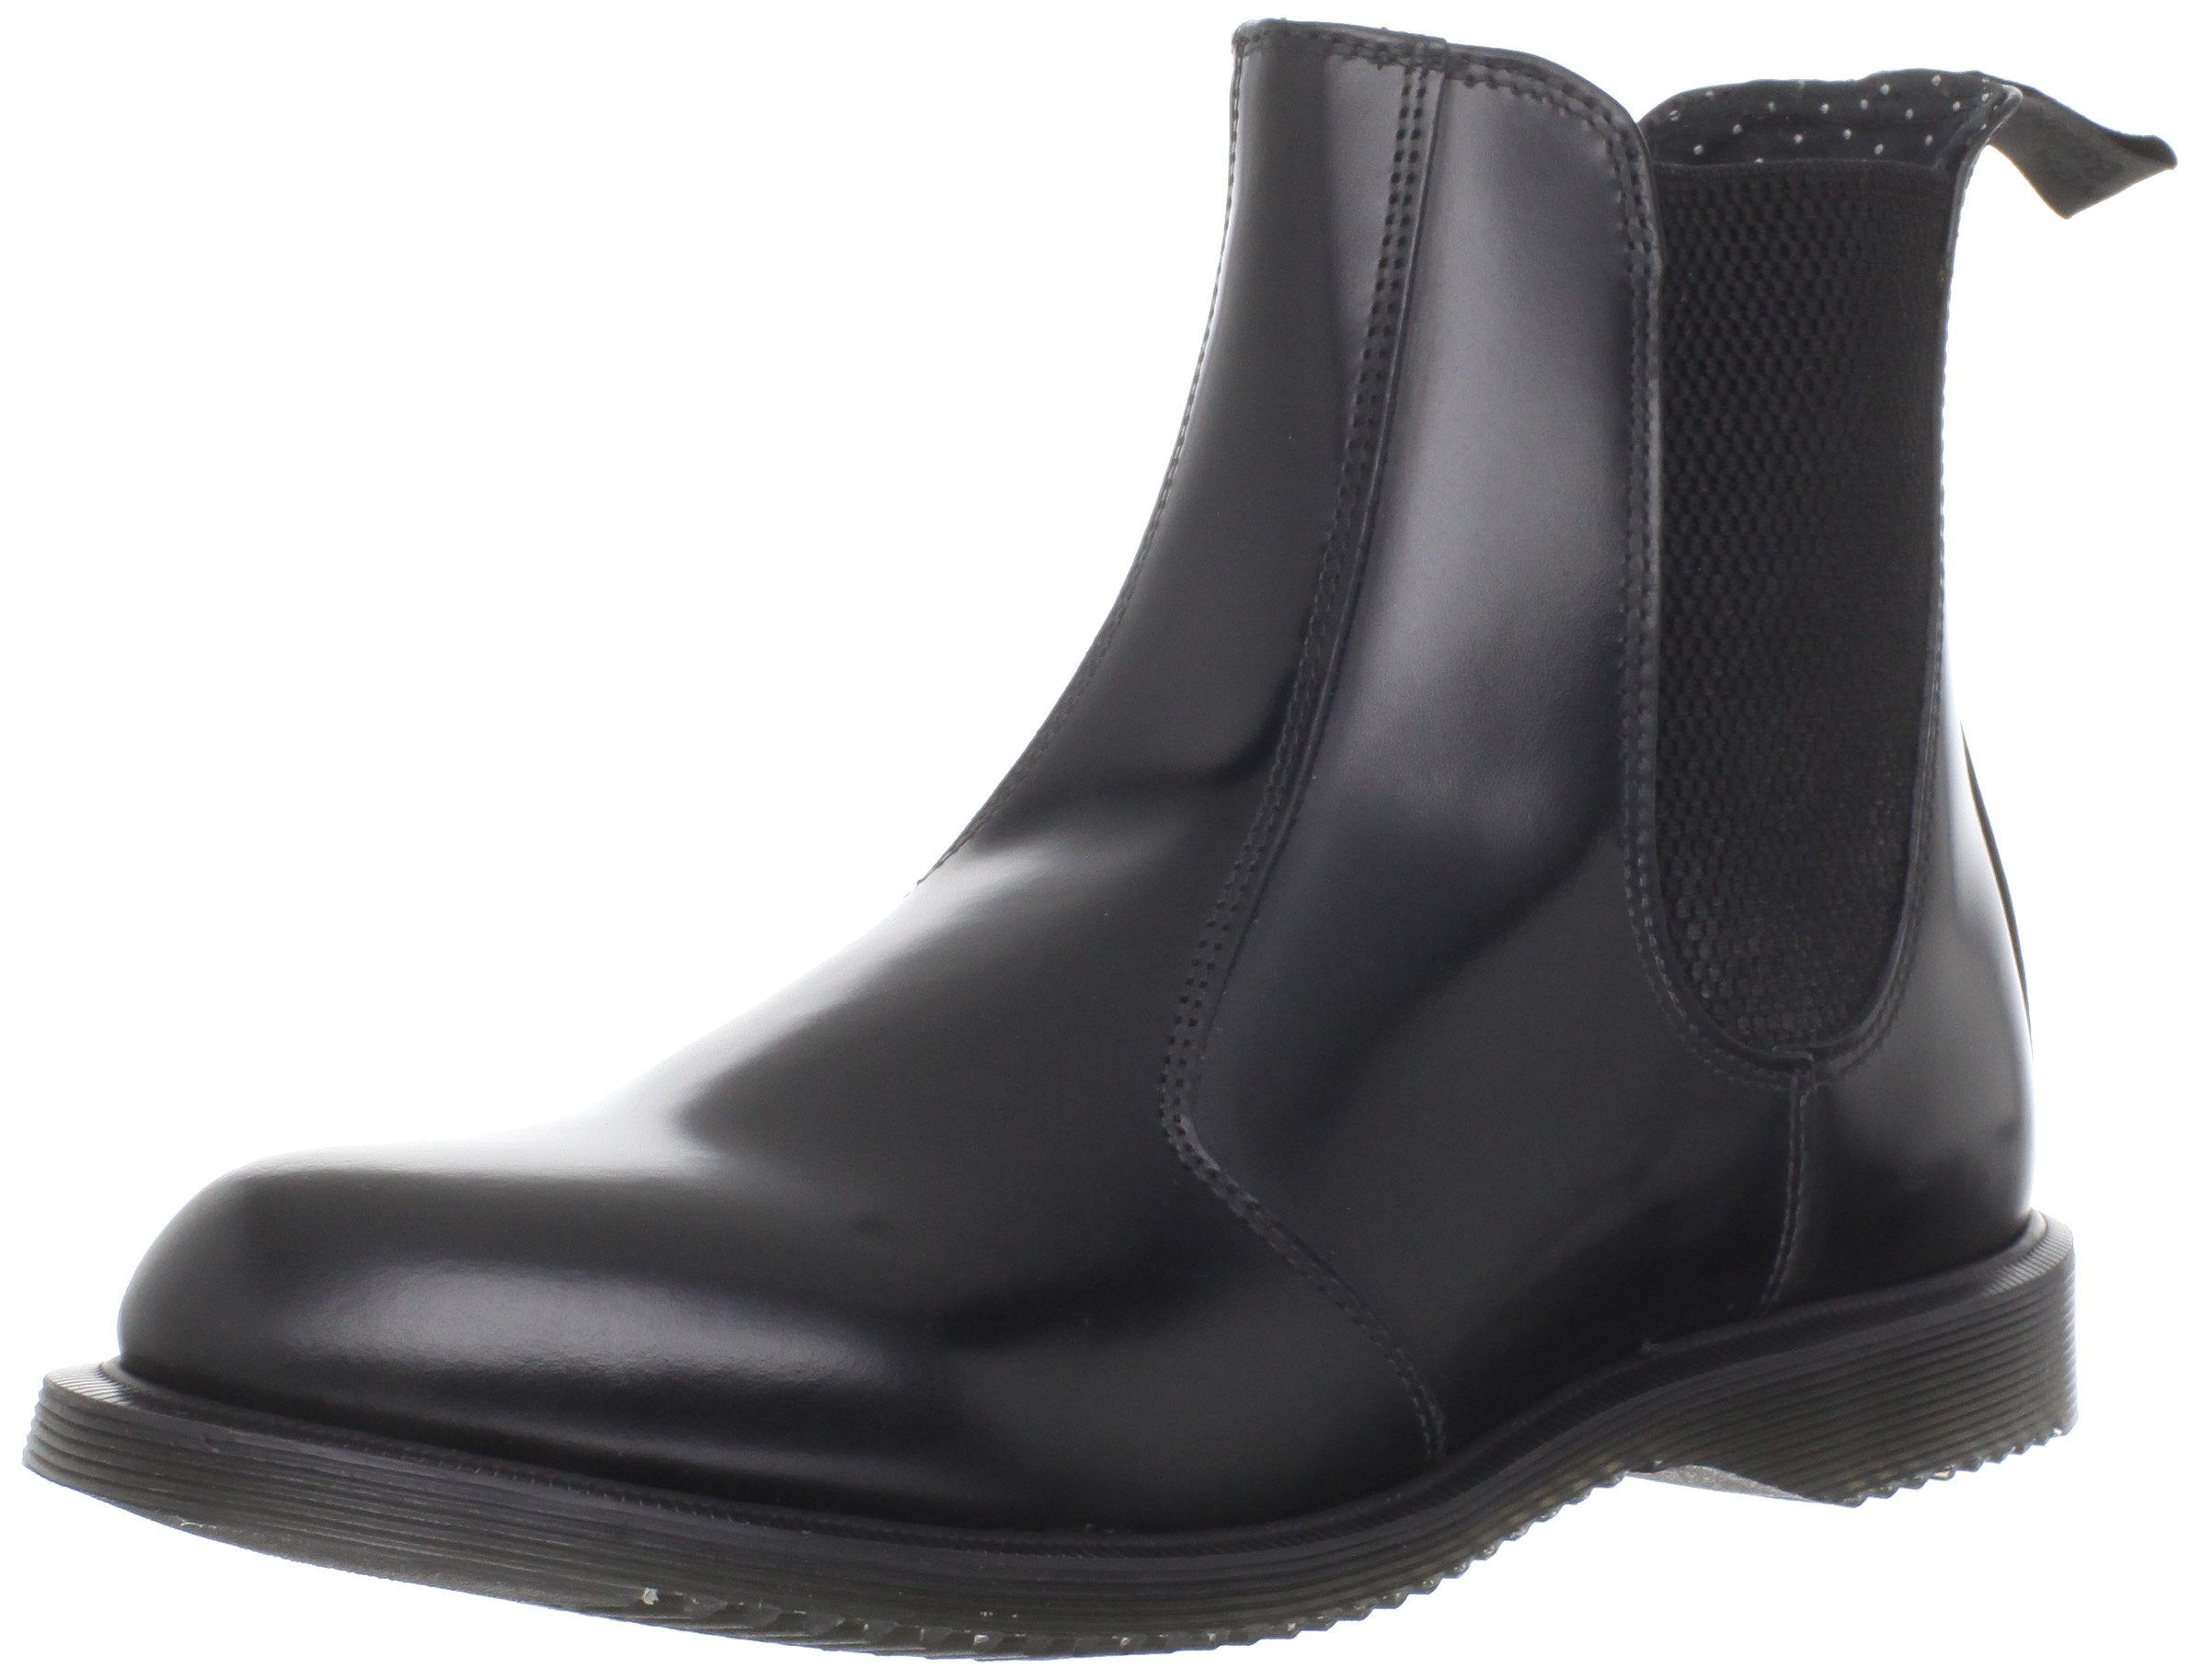 Dr. Martens Women's Leather Flora Chelsea Boot, Black, 7 UK/9 US by Dr. Martens